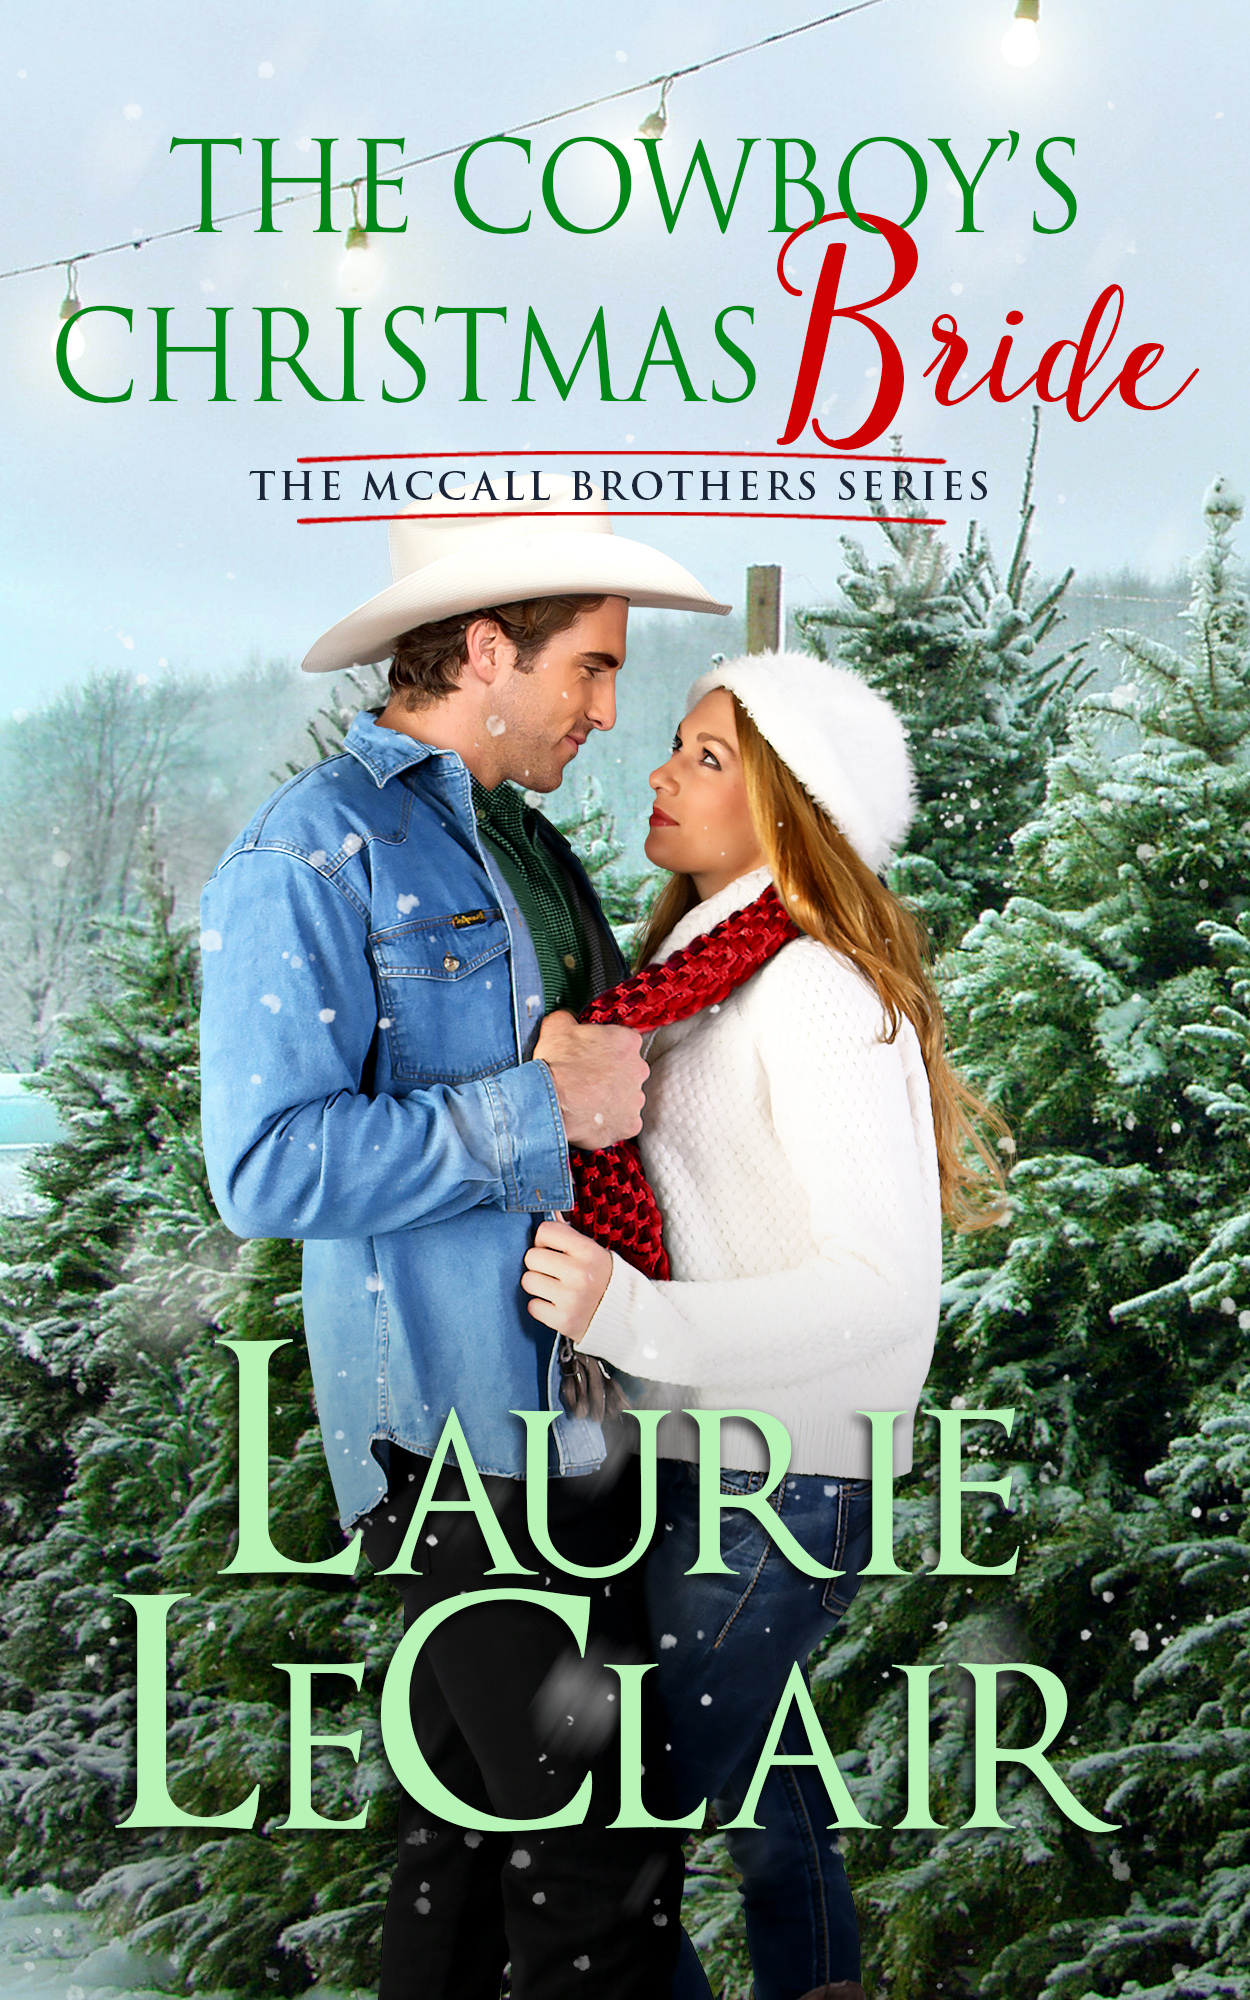 The Cowboy's Christmas Bride final for Barnes and Noble